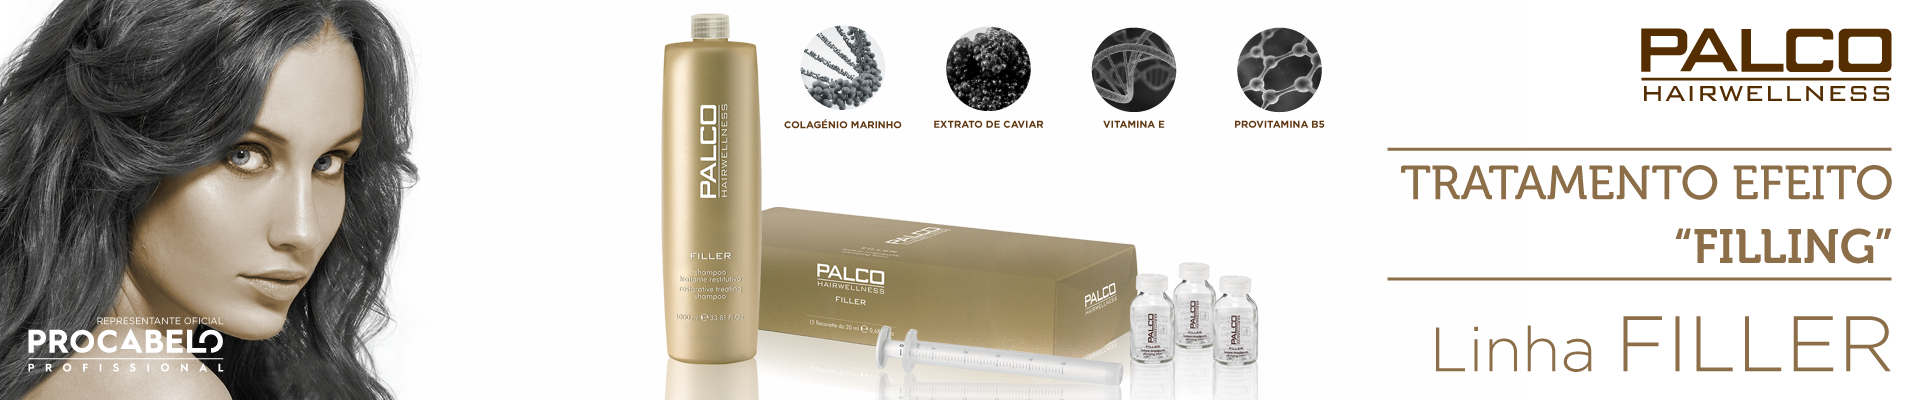 Hairwellness FILLER Palco